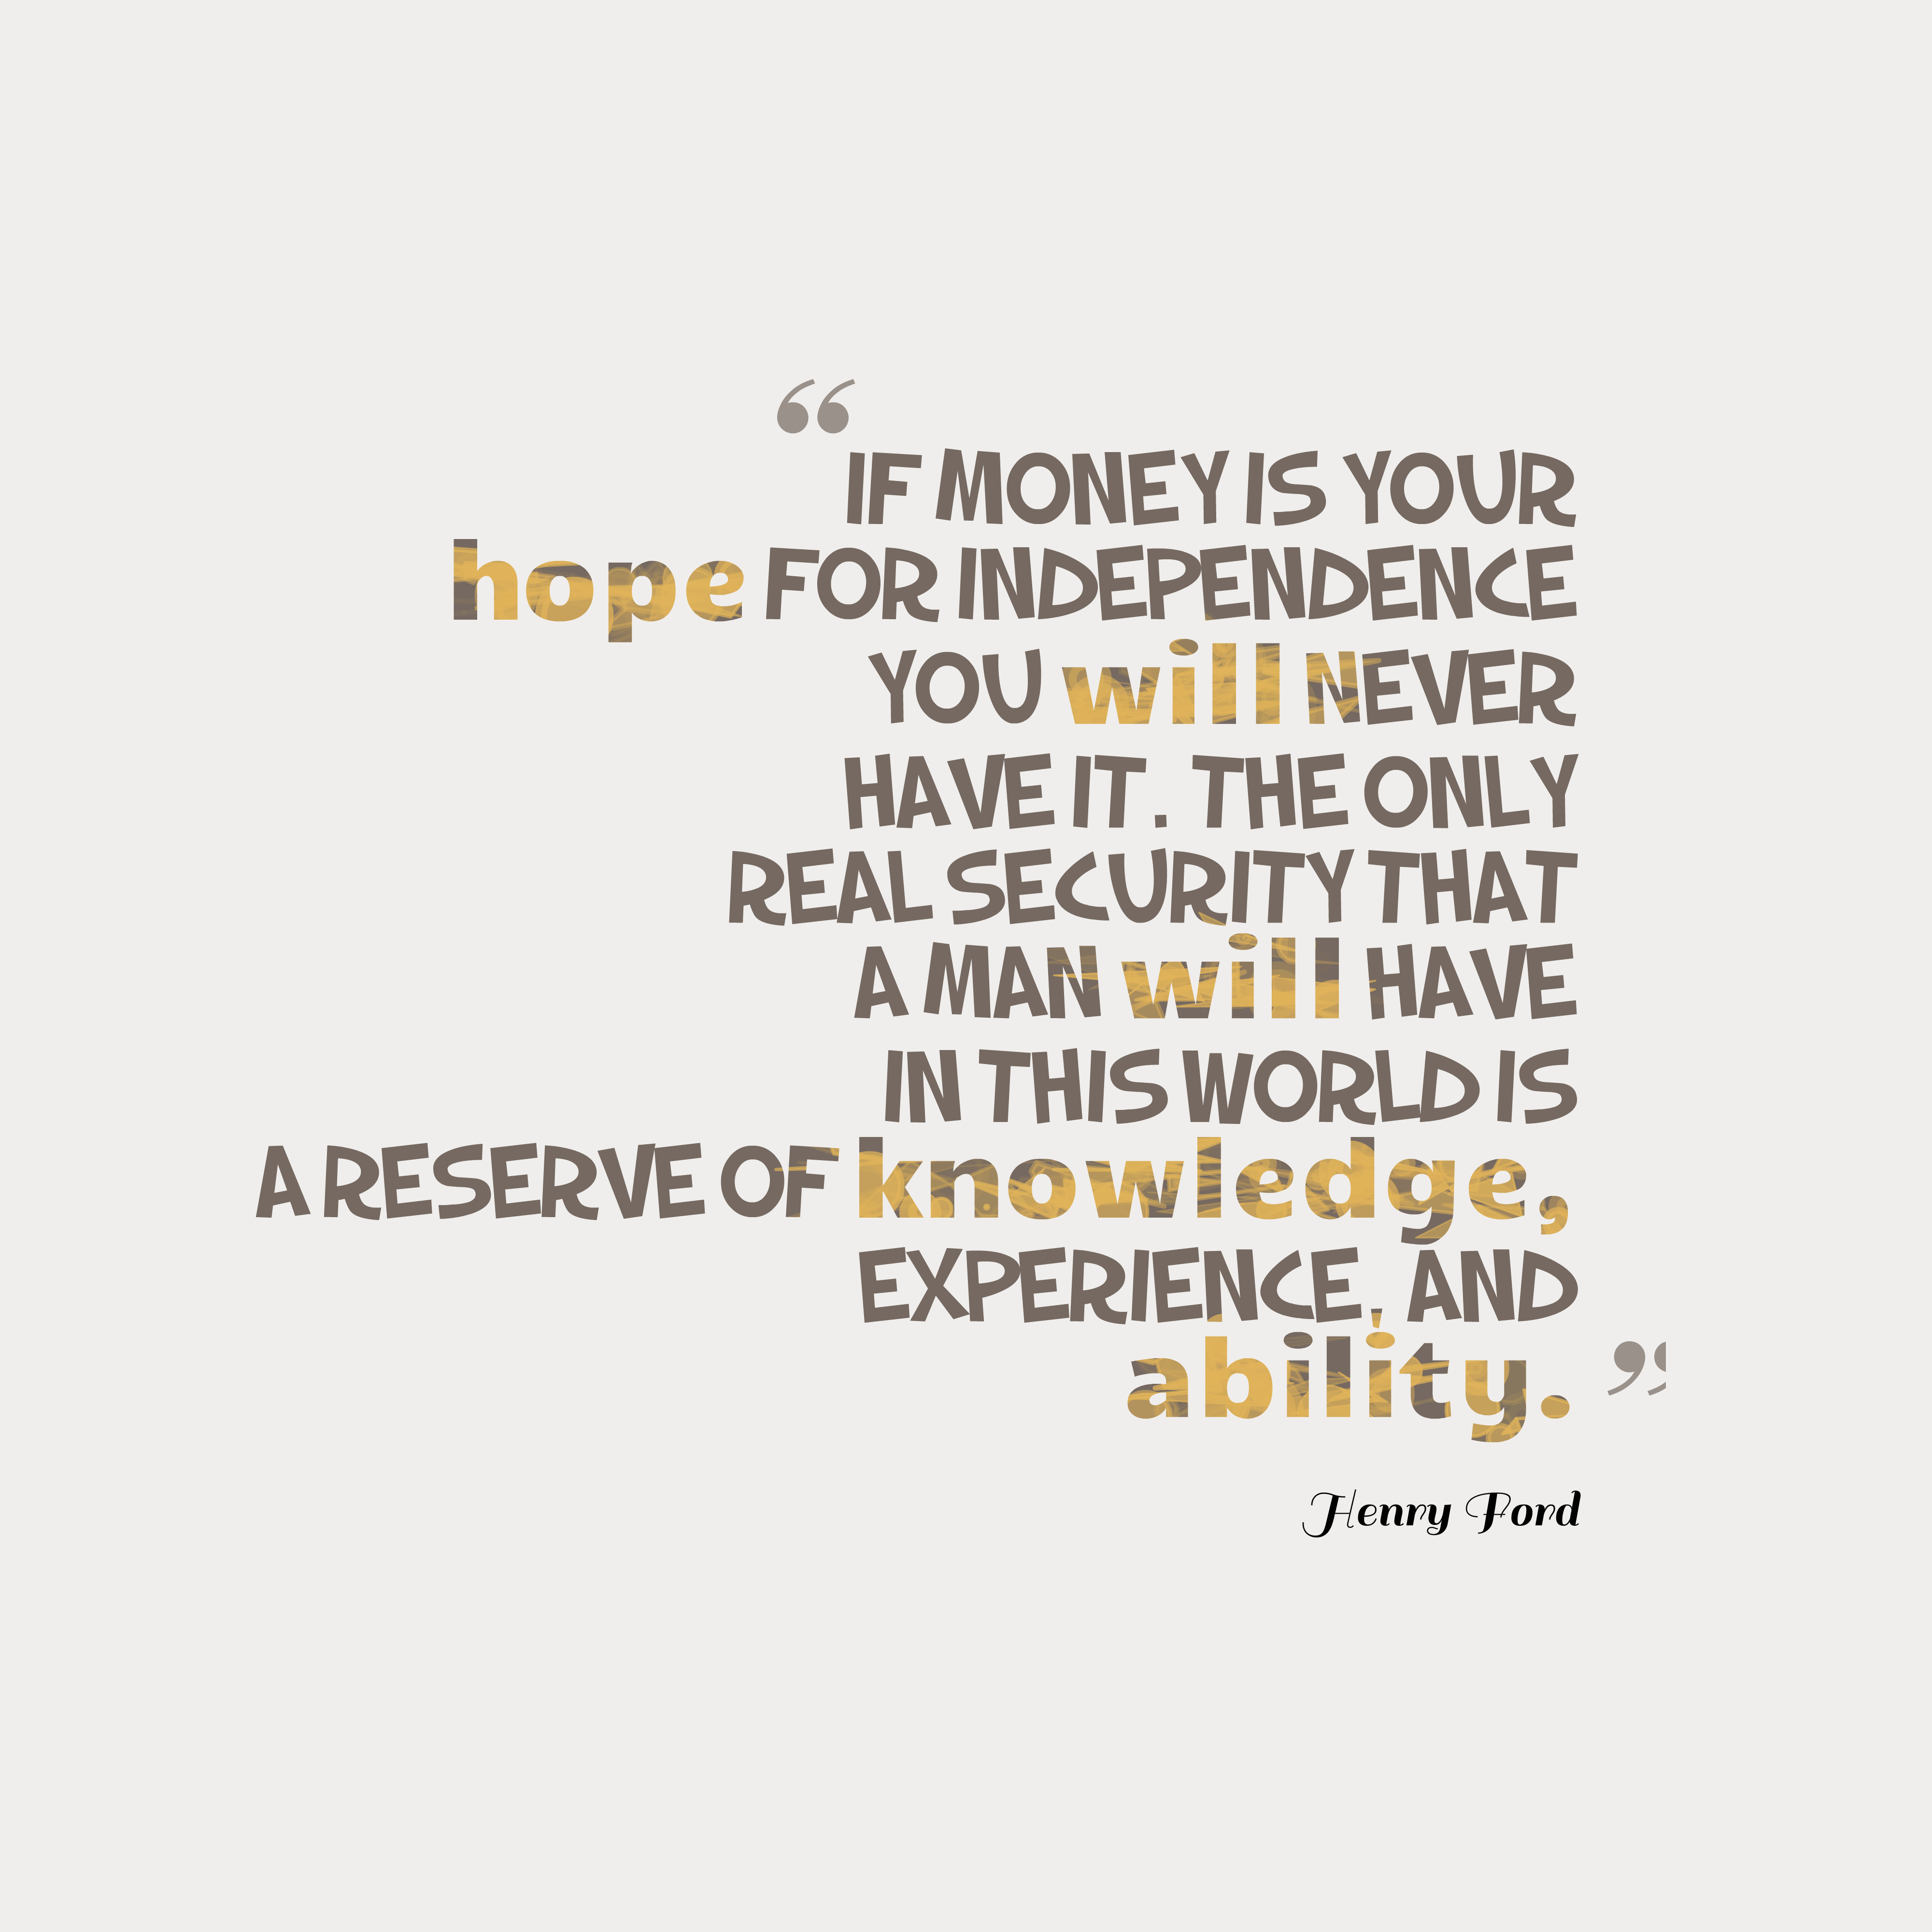 Quotes image of If money is your hope for independence you will never have it. The only real security that a man will have in this world is a reserve of knowledge, experience, and ability.